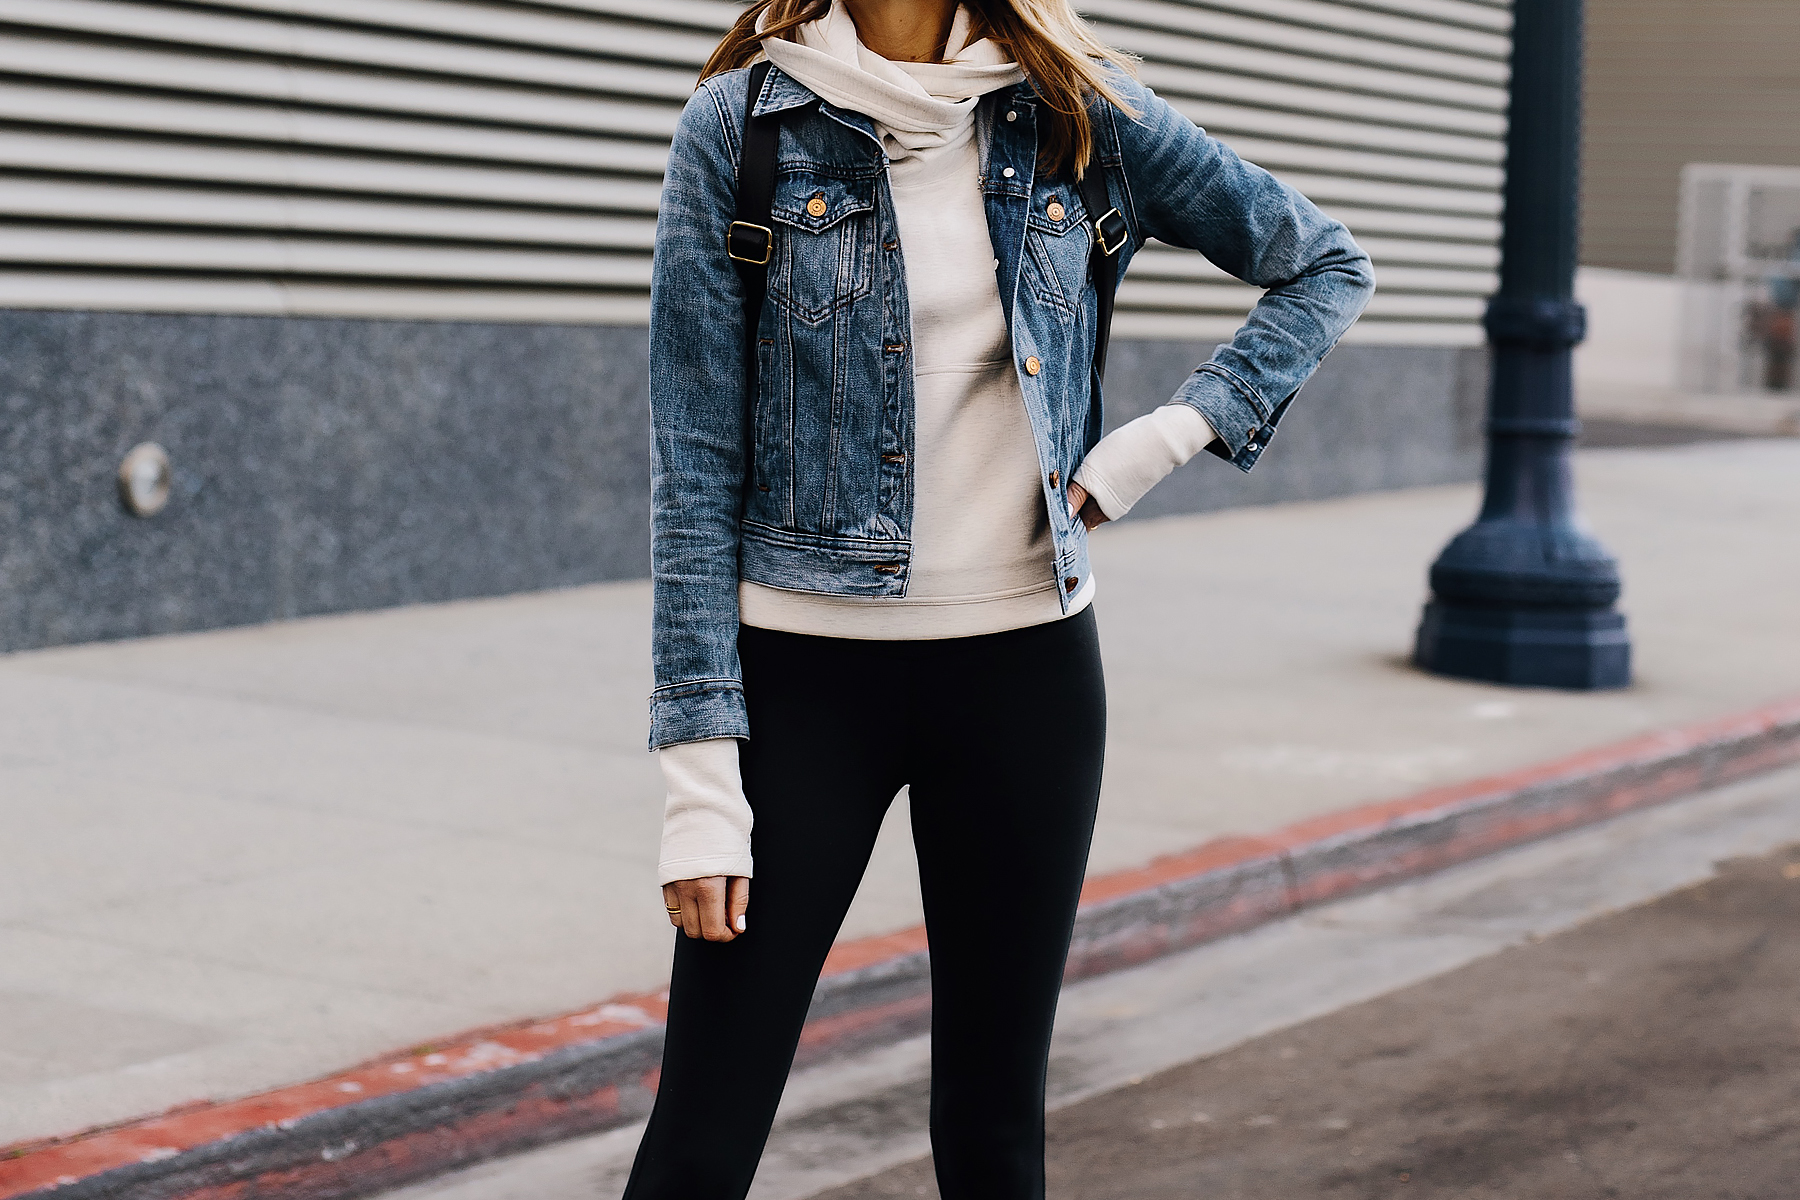 Fashion Jackson Athleisure Outfit Denim Jacket Grey Sweatshirt Black Leggings Fashion Jackson San Diego Fashion Blogger Street Style